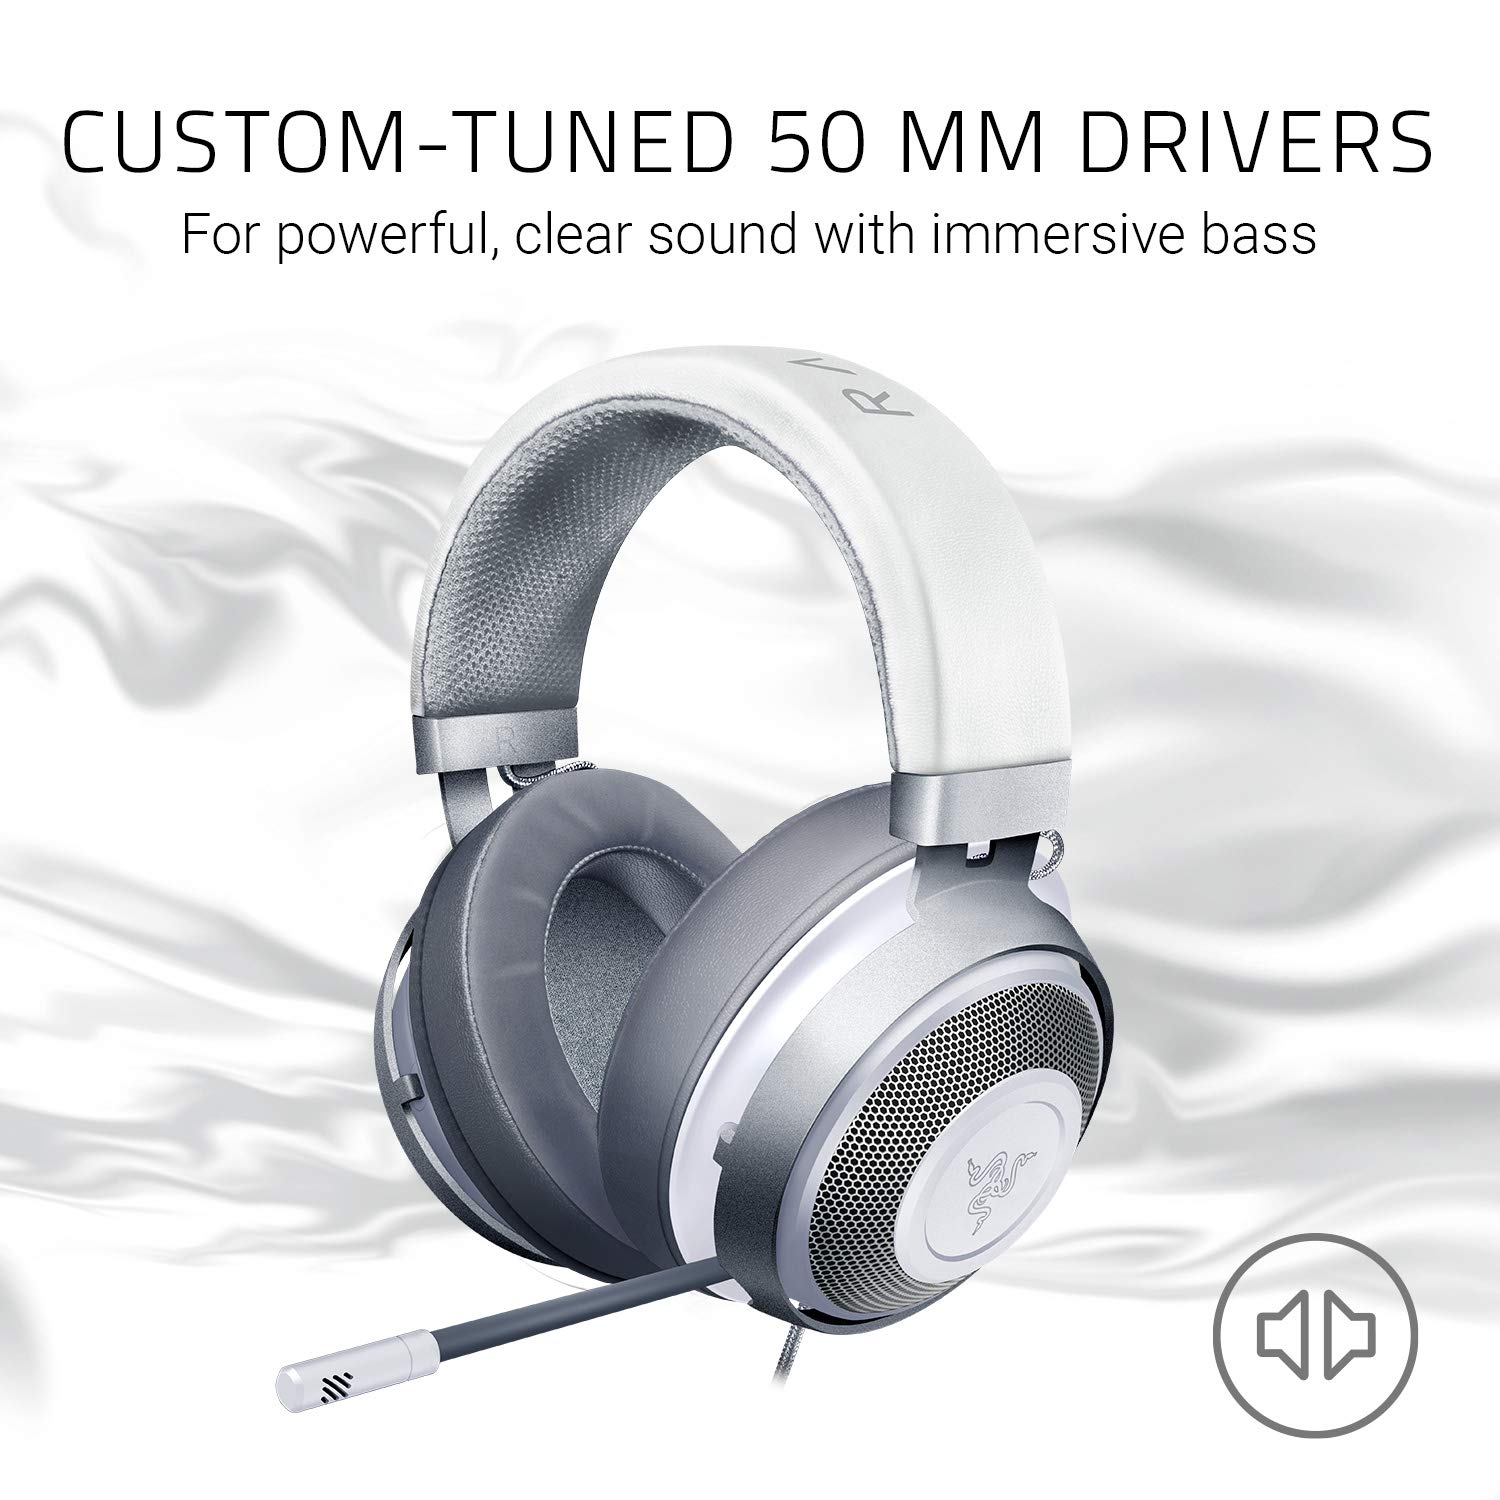 Razer Kraken Gaming Headset 2019: Lightweight Aluminum Frame - Retractable  Noise Cancelling Mic - for PC, Xbox, PS4, Nintendo Switch - Mercury White